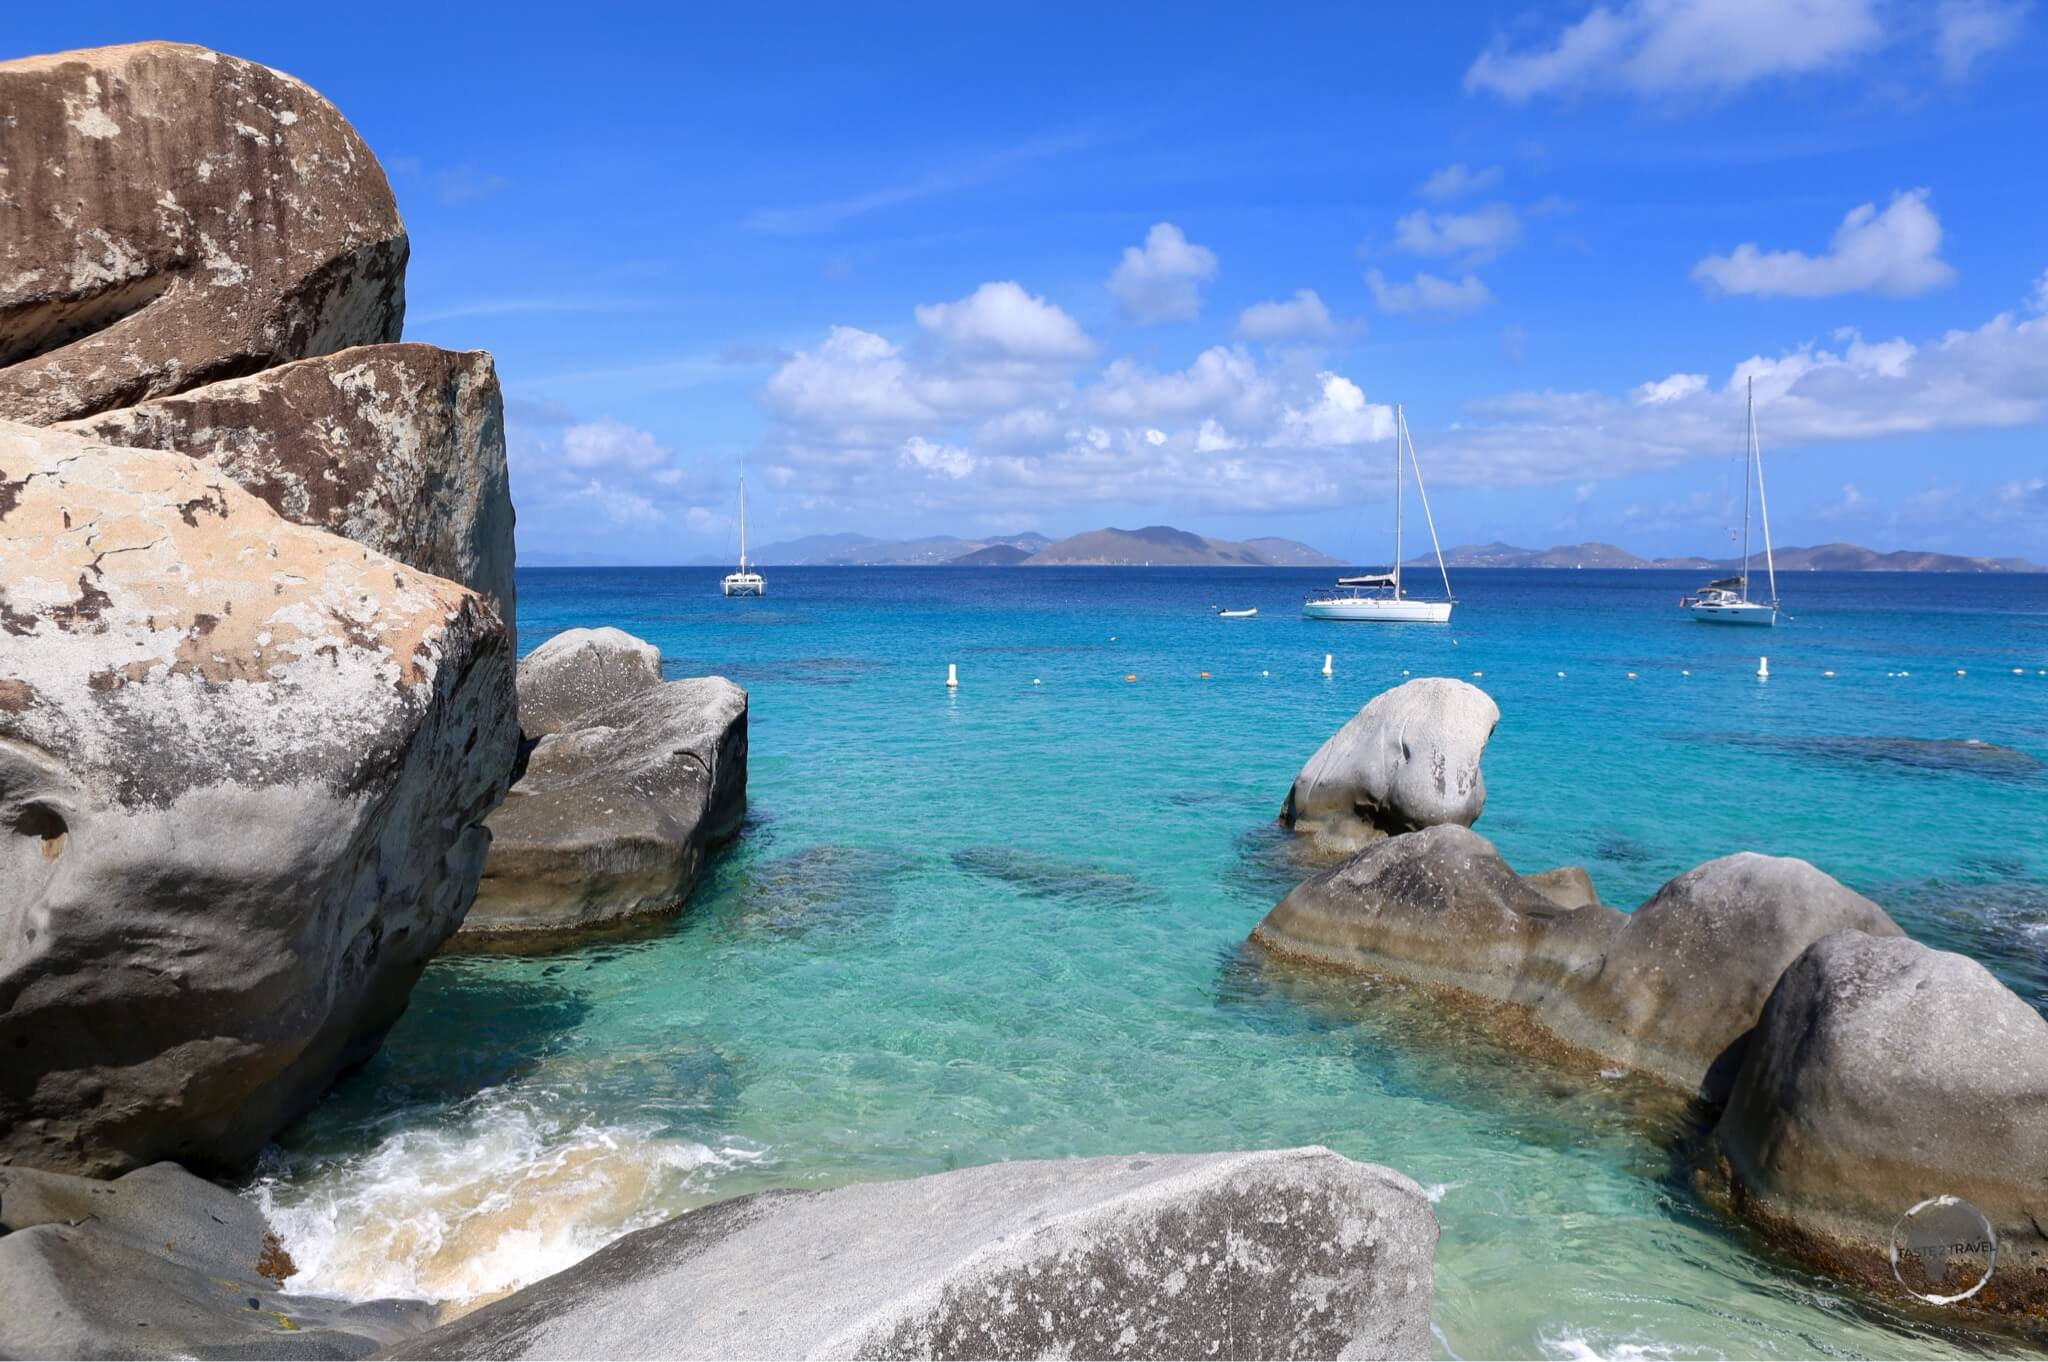 Fantastic snorkeling awaits at The Baths on Virgin Gorda island.